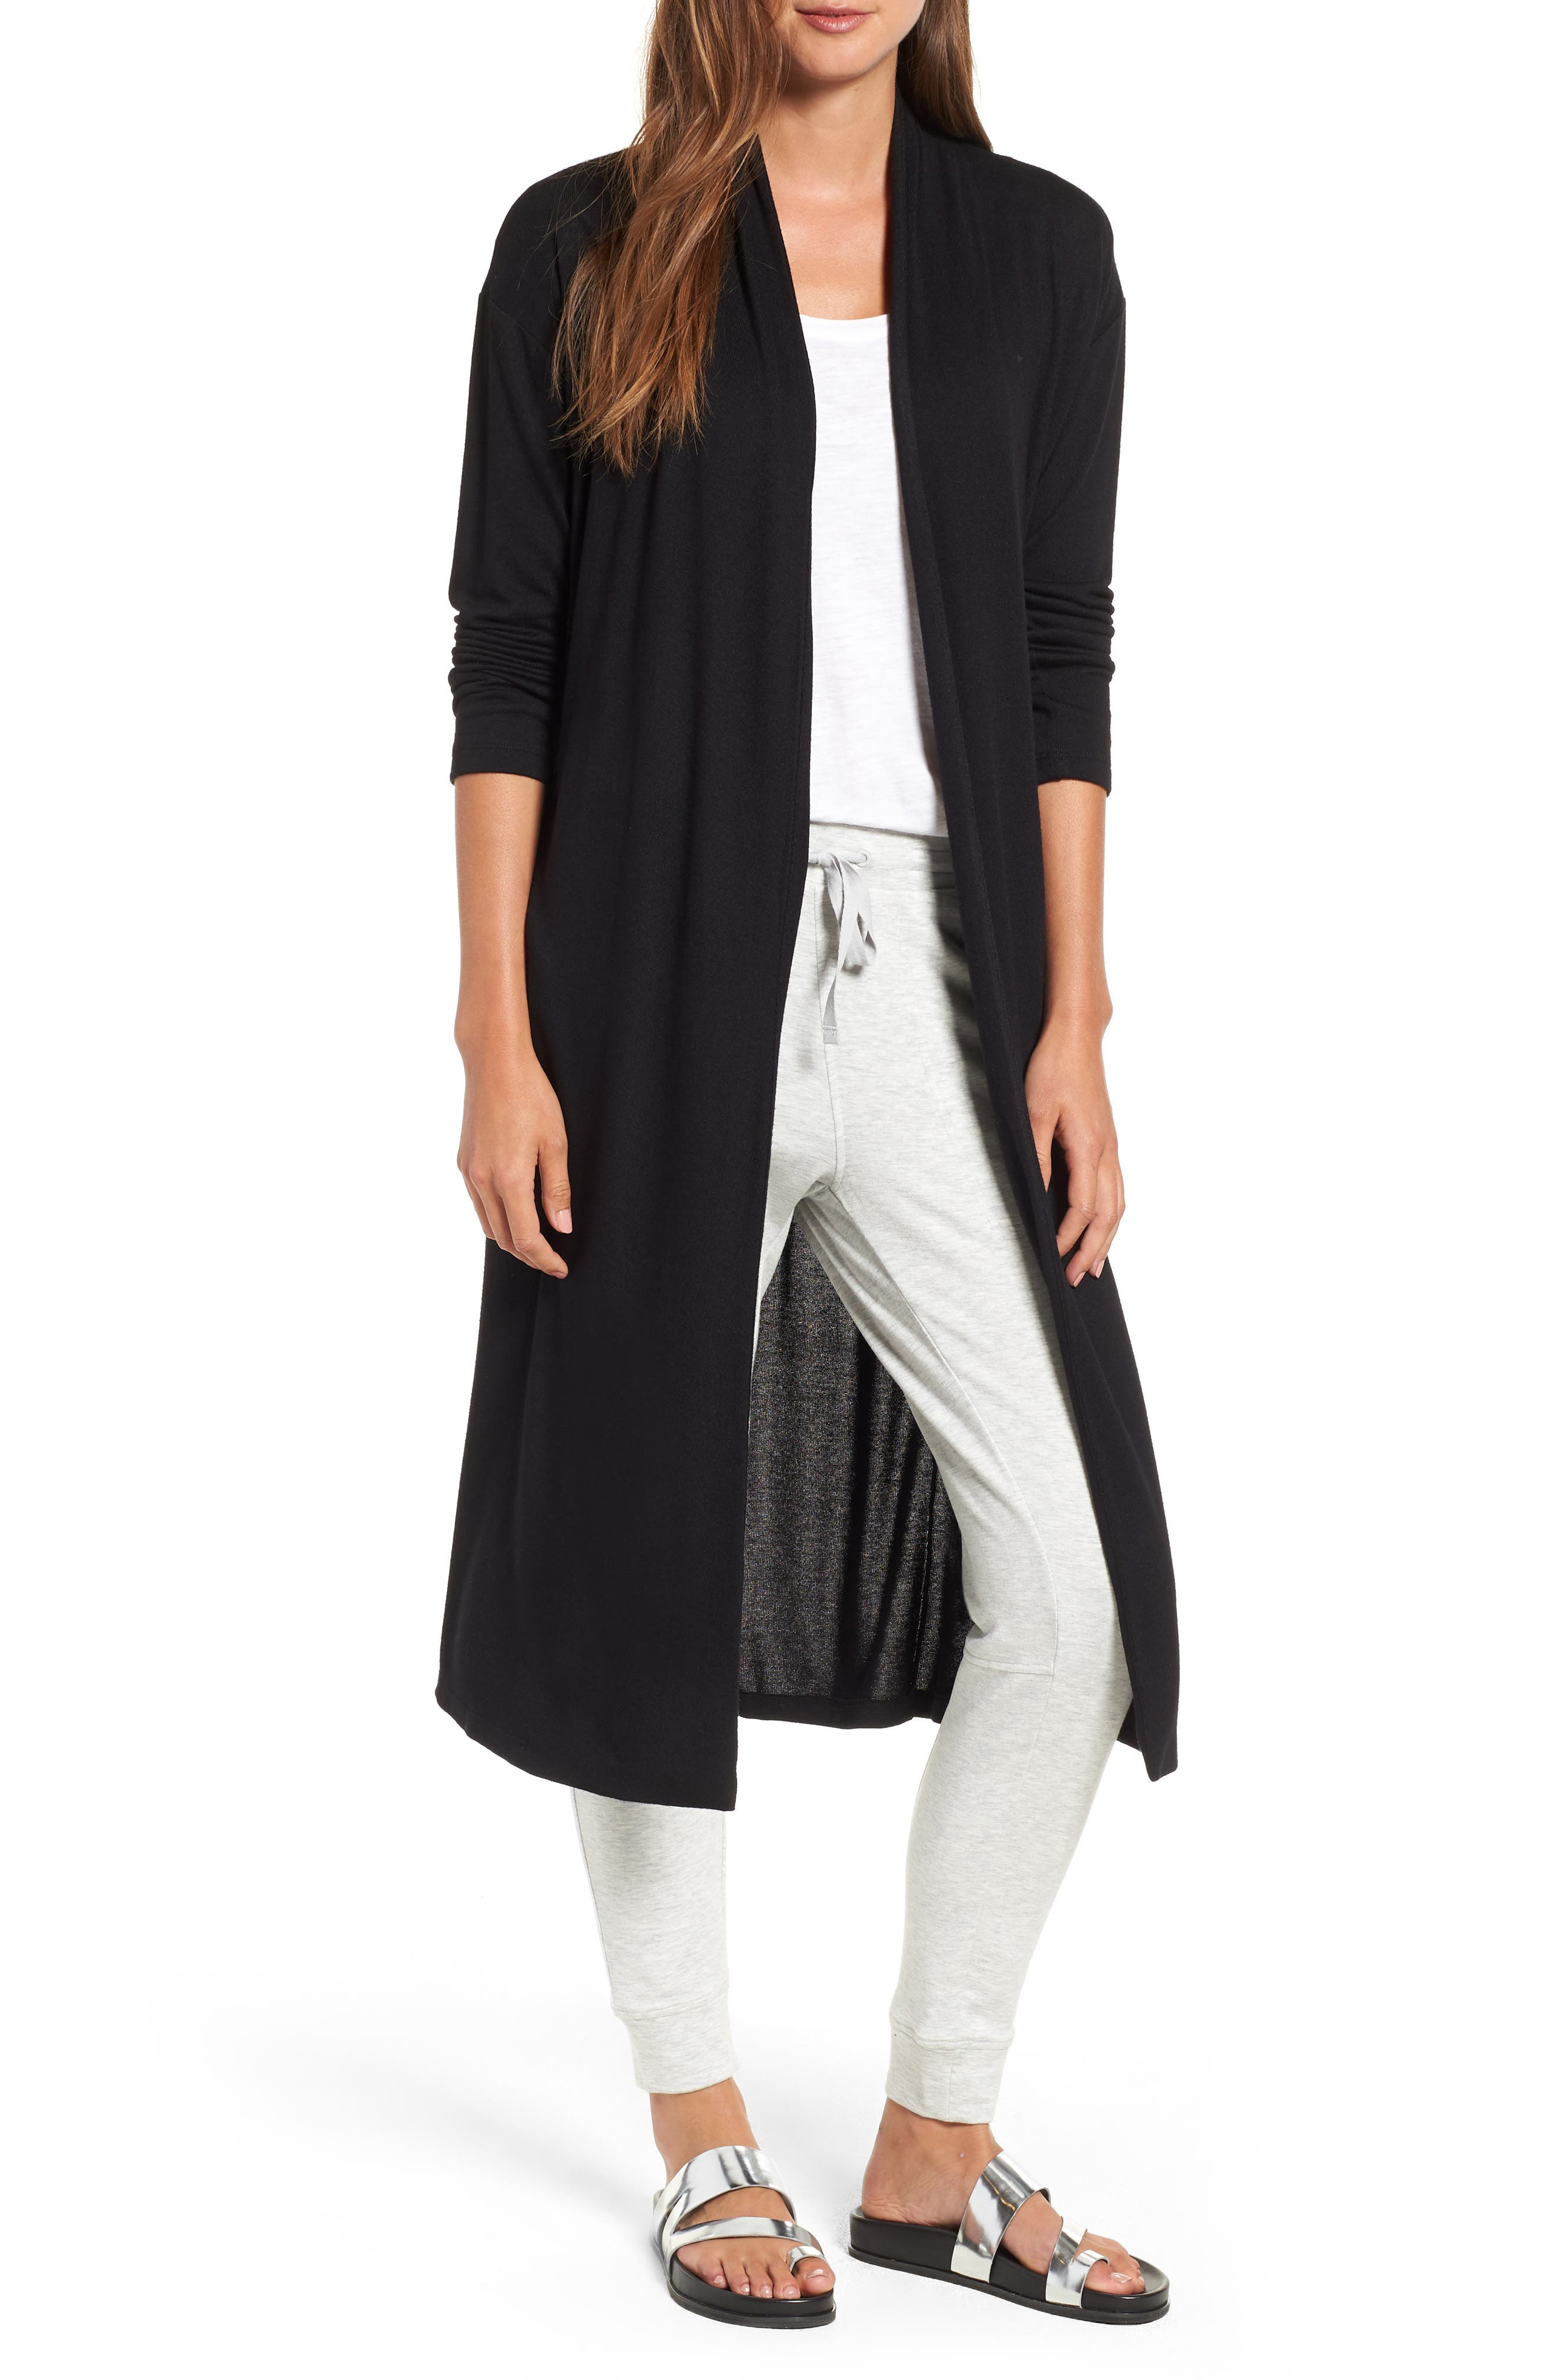 LOU & GREY Pocket Duster, Main, color, 001